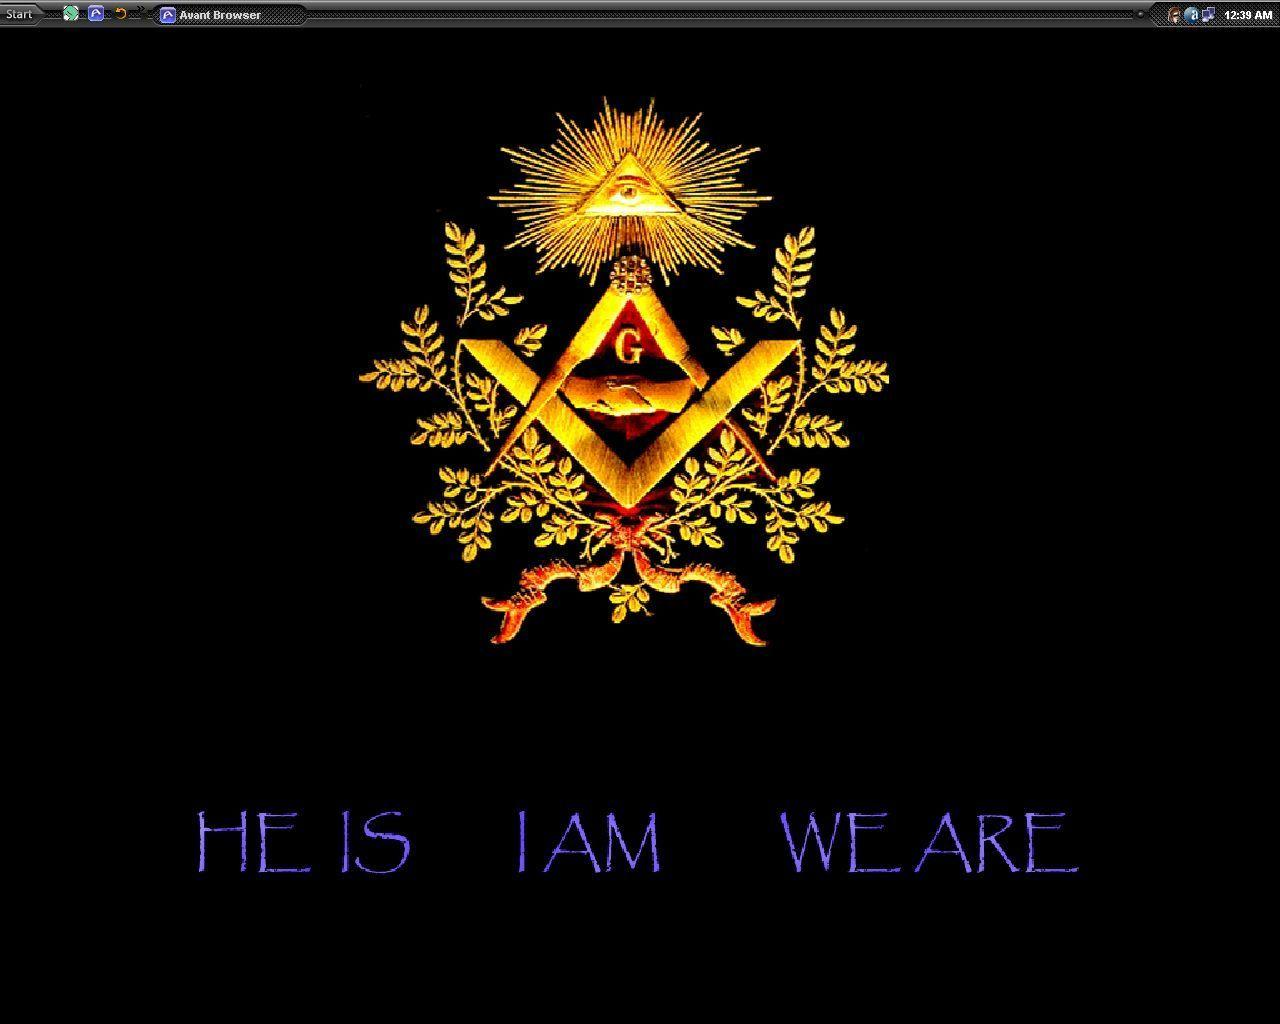 Masonic Desktop Wallpaper 22194 Wallpapers HD | colourinwallpaper.